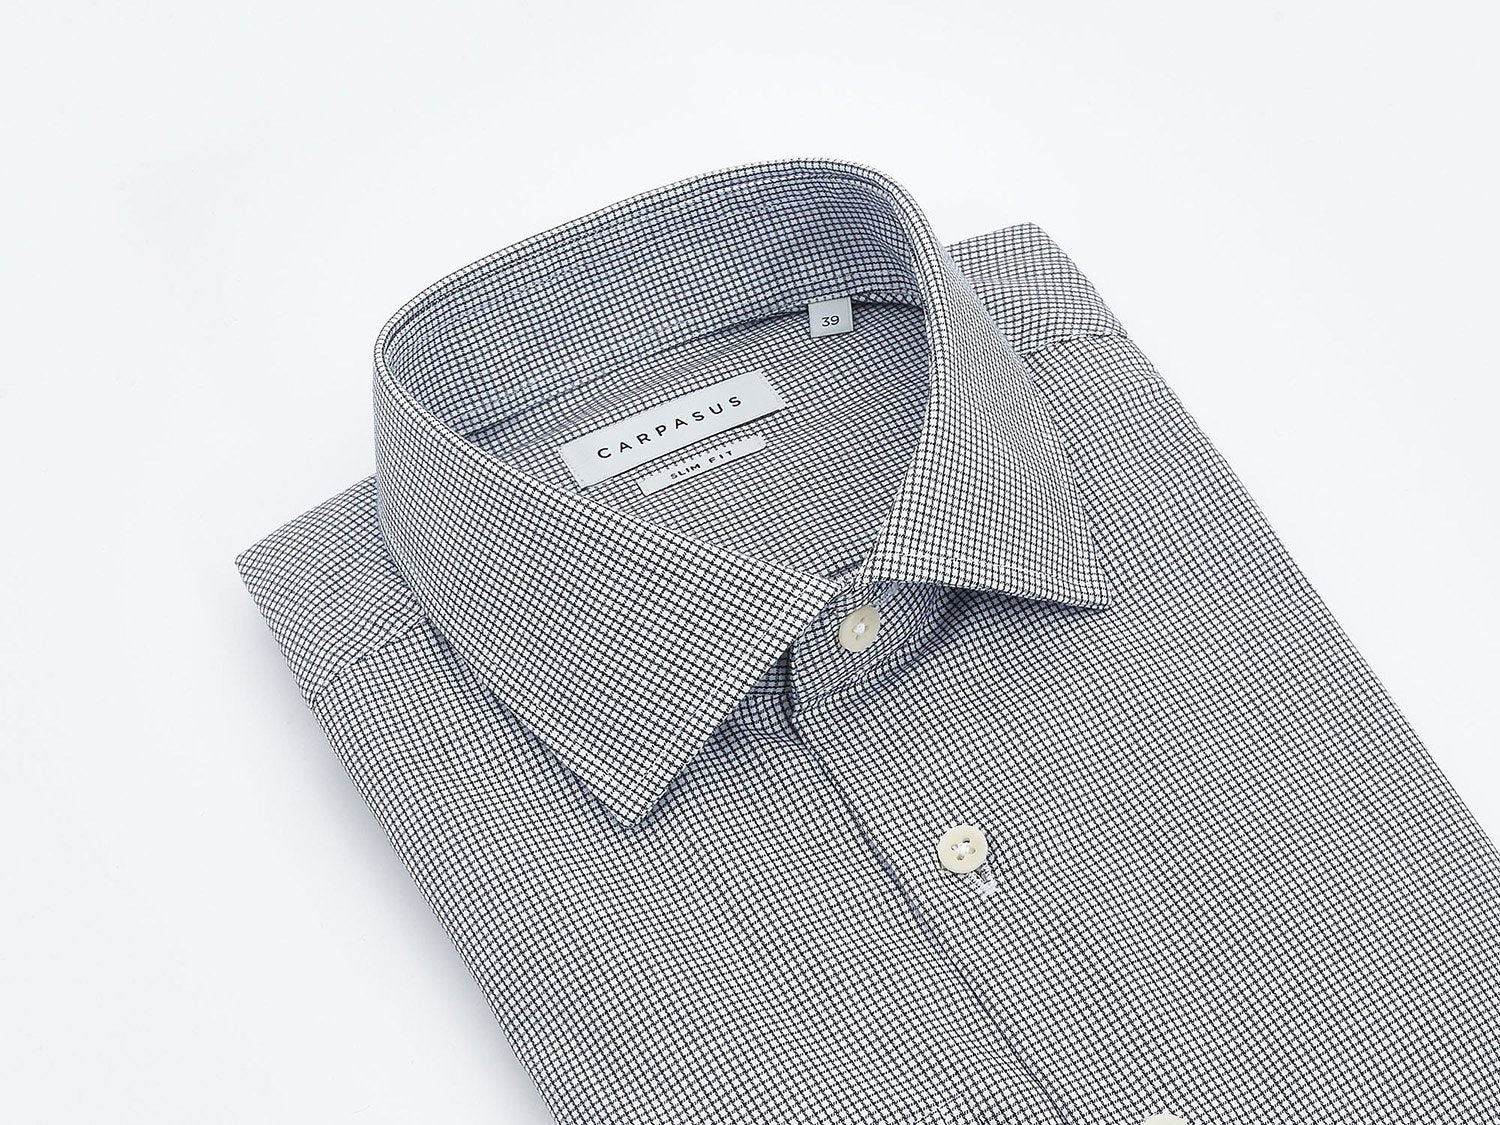 carpasus sustainable organic cotton tailor-made shirt black check. Nachhaltiges Carpasus Masshemd aus Bio Baumwolle Karo Schwarz